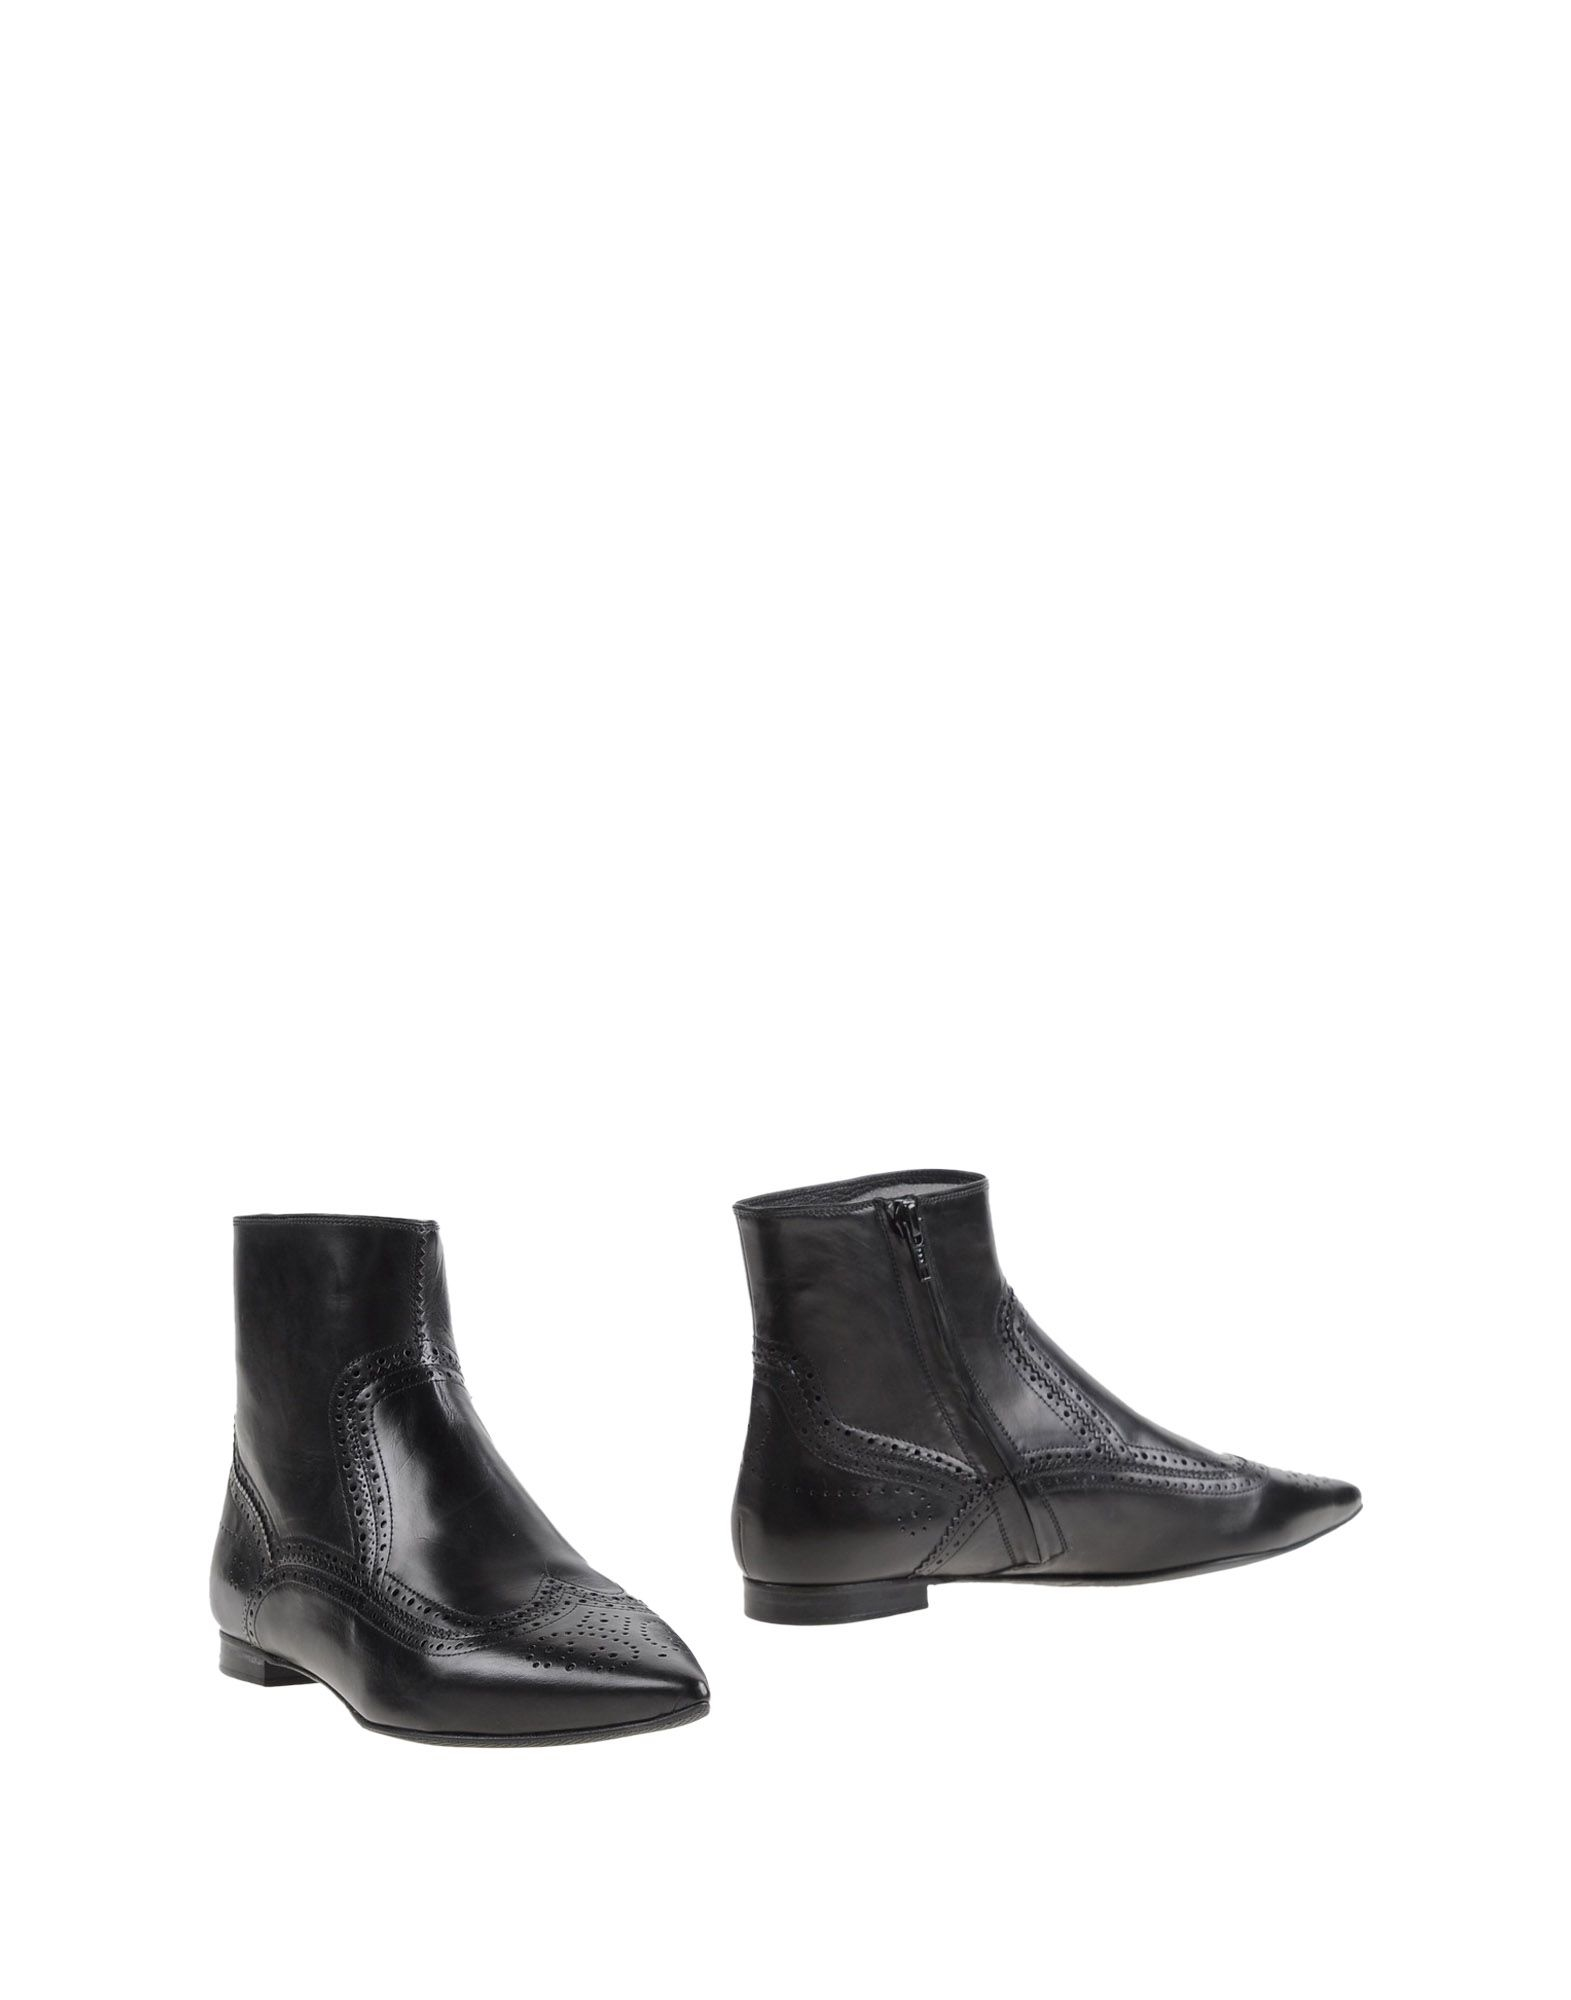 pedro garcia ankle boots in black lyst